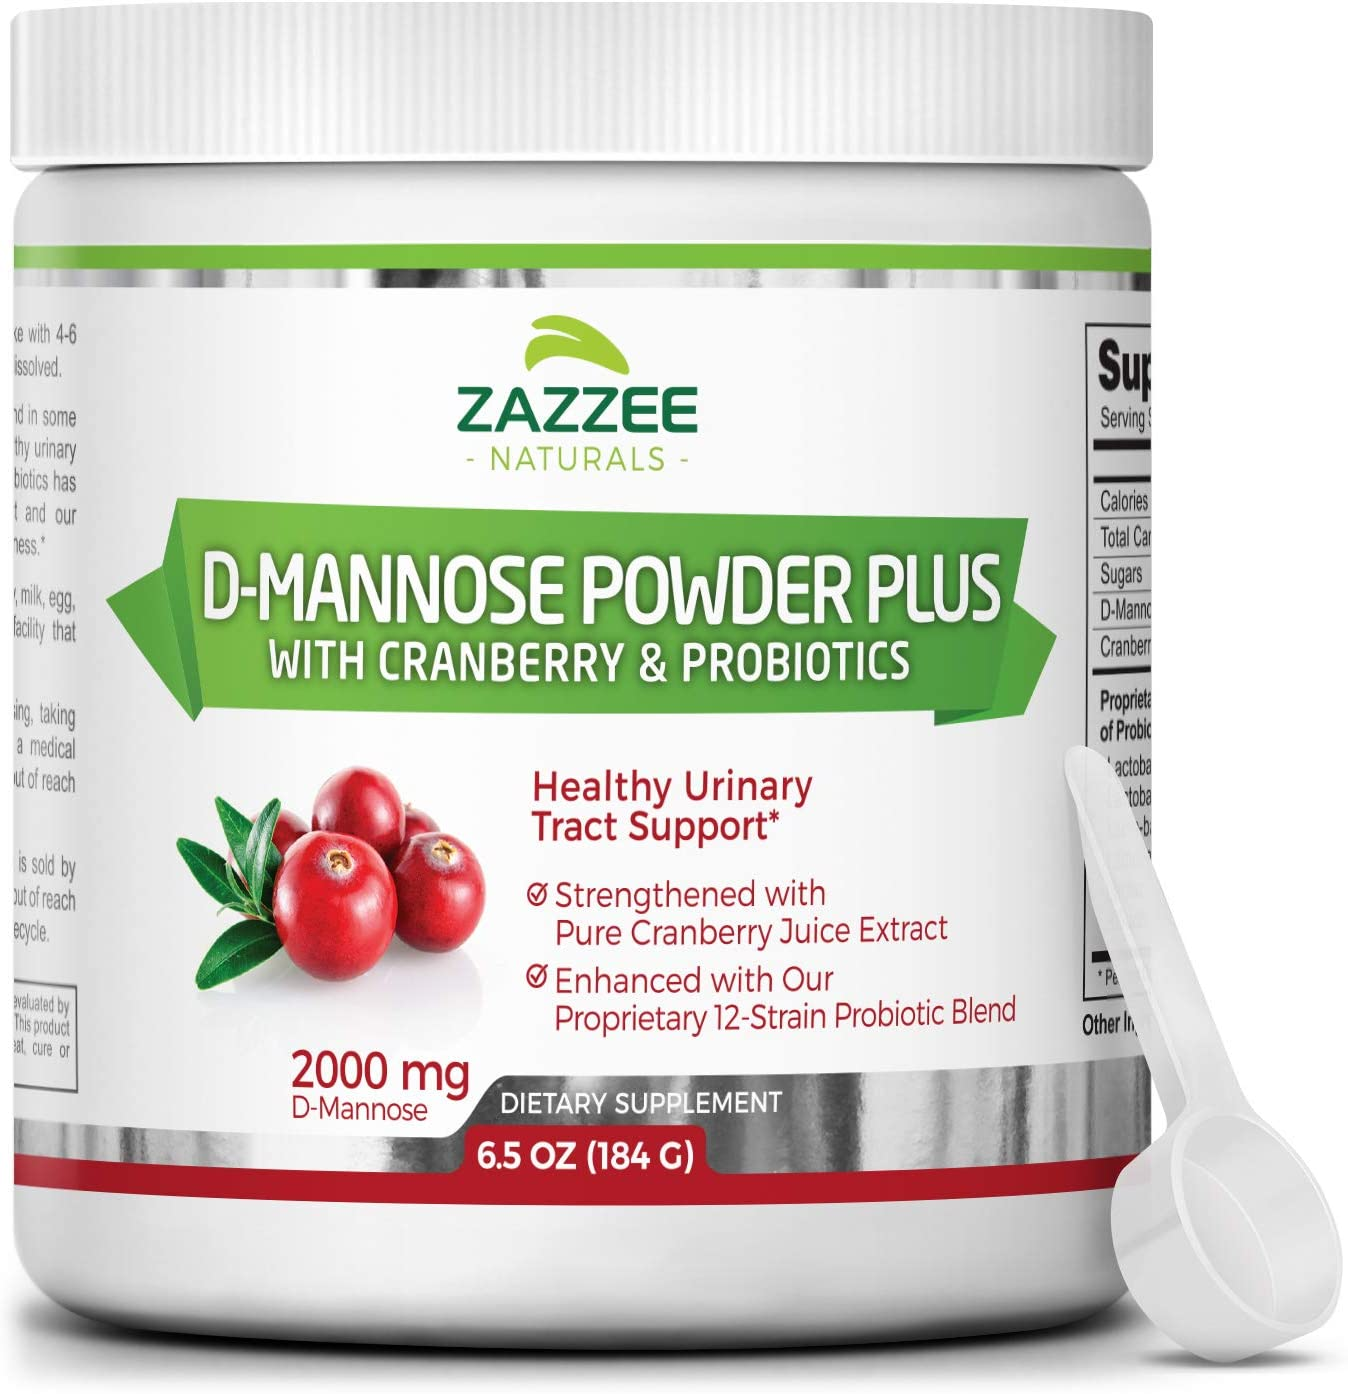 Zazzee D-Mannose Powder Plus, 67 Servings, 6.5 Ounces, Plus 5 Billion CFU Probiotics, Enhanced with Pure Cranberry Juice, Includes Free Scoop, Fast-Acting, Vegan, Non-GMO and All-Natural: Health & Personal Care